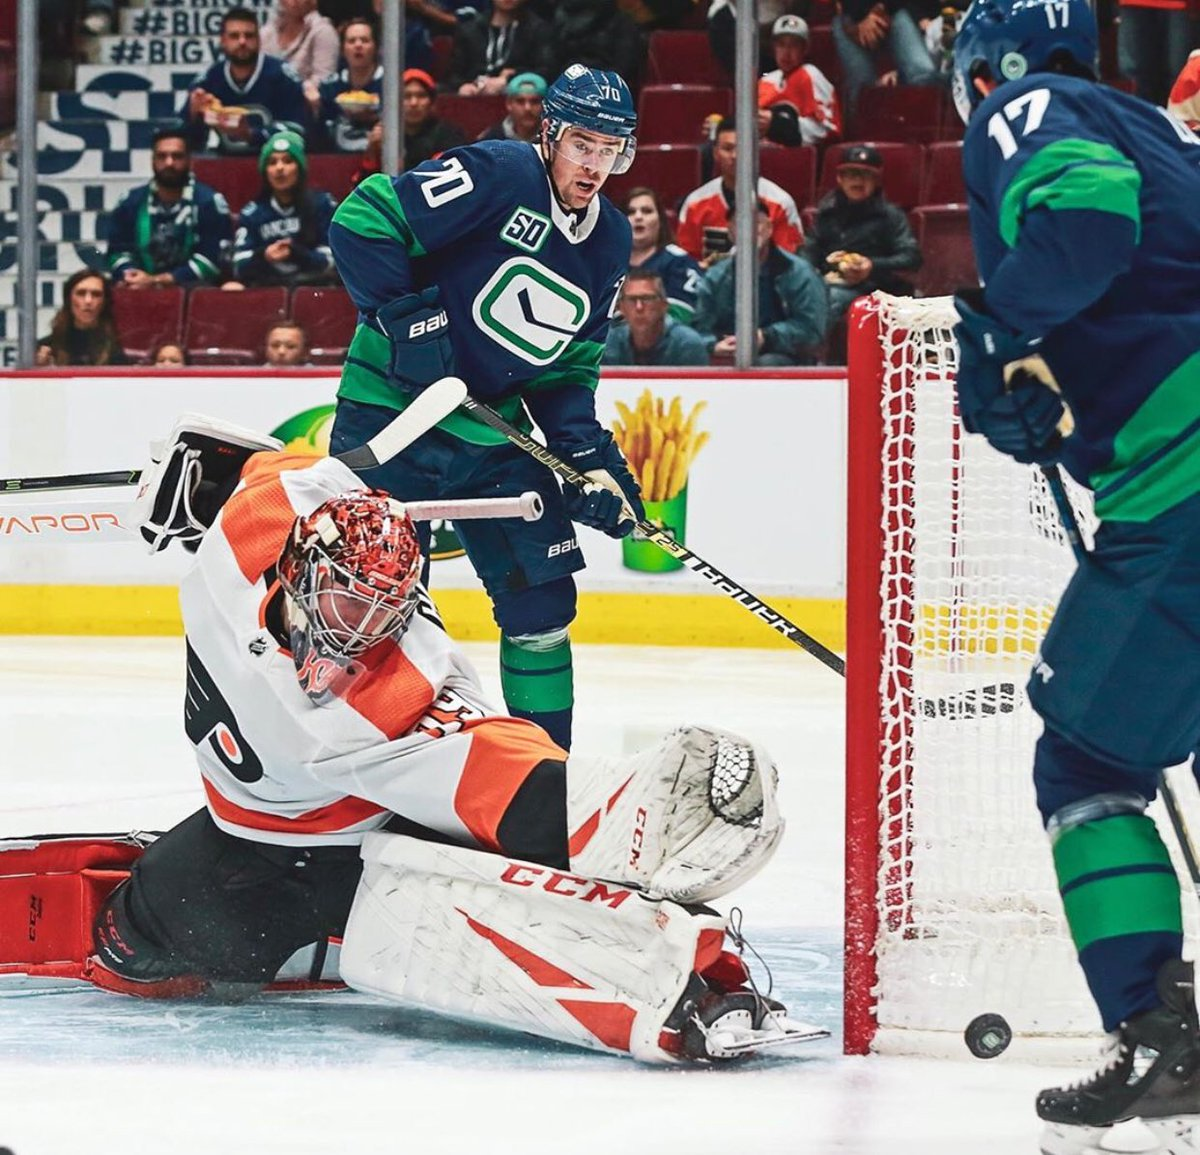 The Vancouver Canucks defeated the Philadelphia Flyers in a shootout by a score of 3-2 on Saturday October 12, 2019. Number 79 was once again outstanding for the Flyers in front of the white twine. #LetsGoFlyers #FlyOrDie #TheHartOfTheFlyers